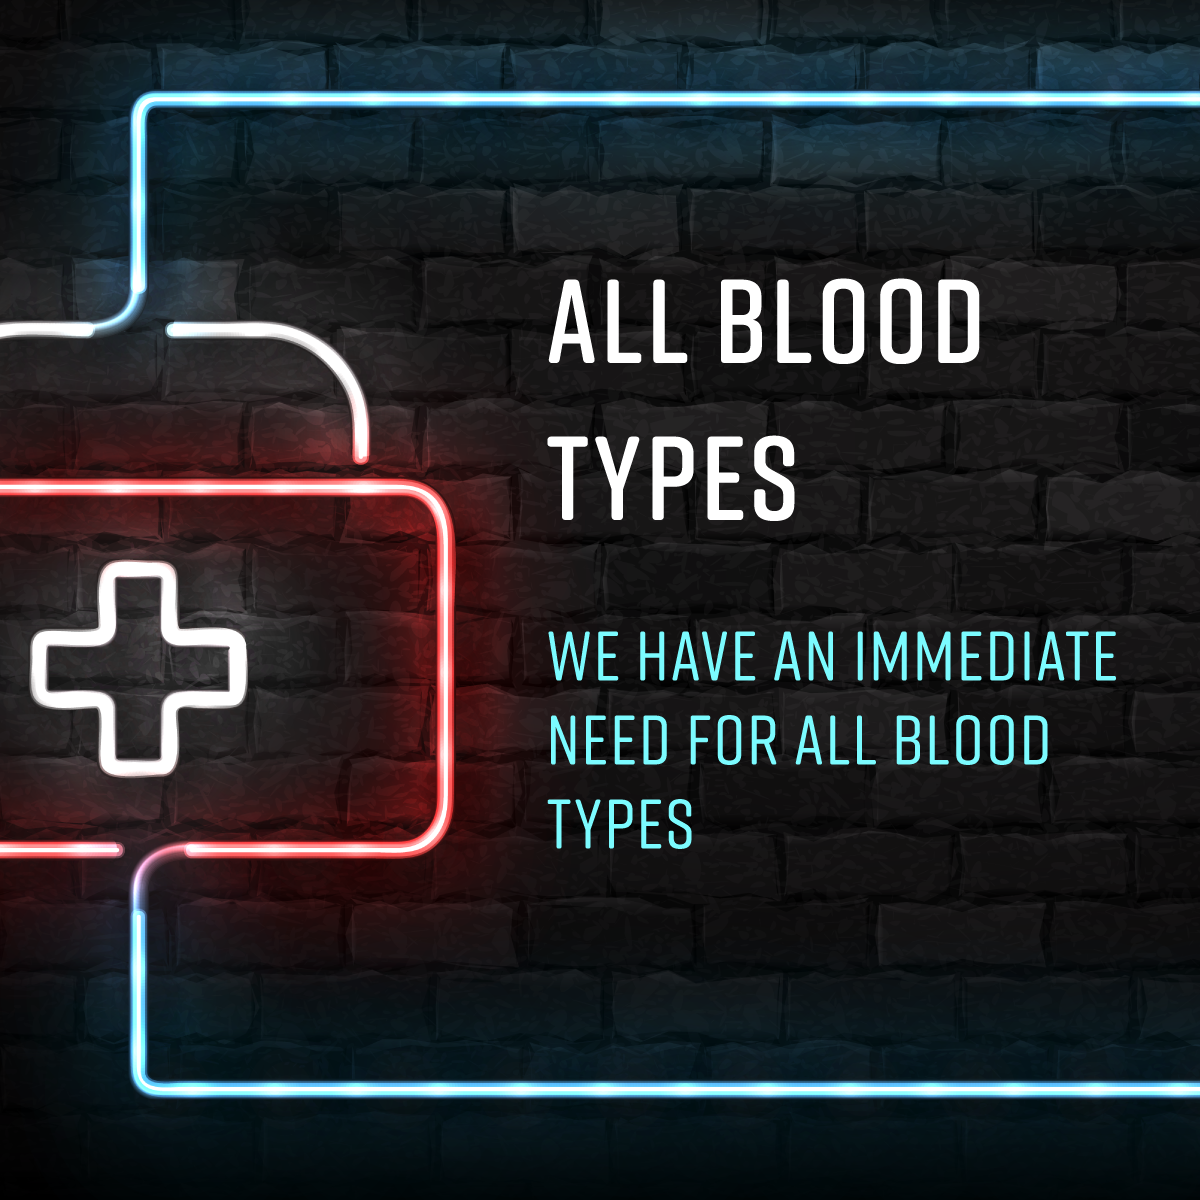 Immediate Need for All Blood Types